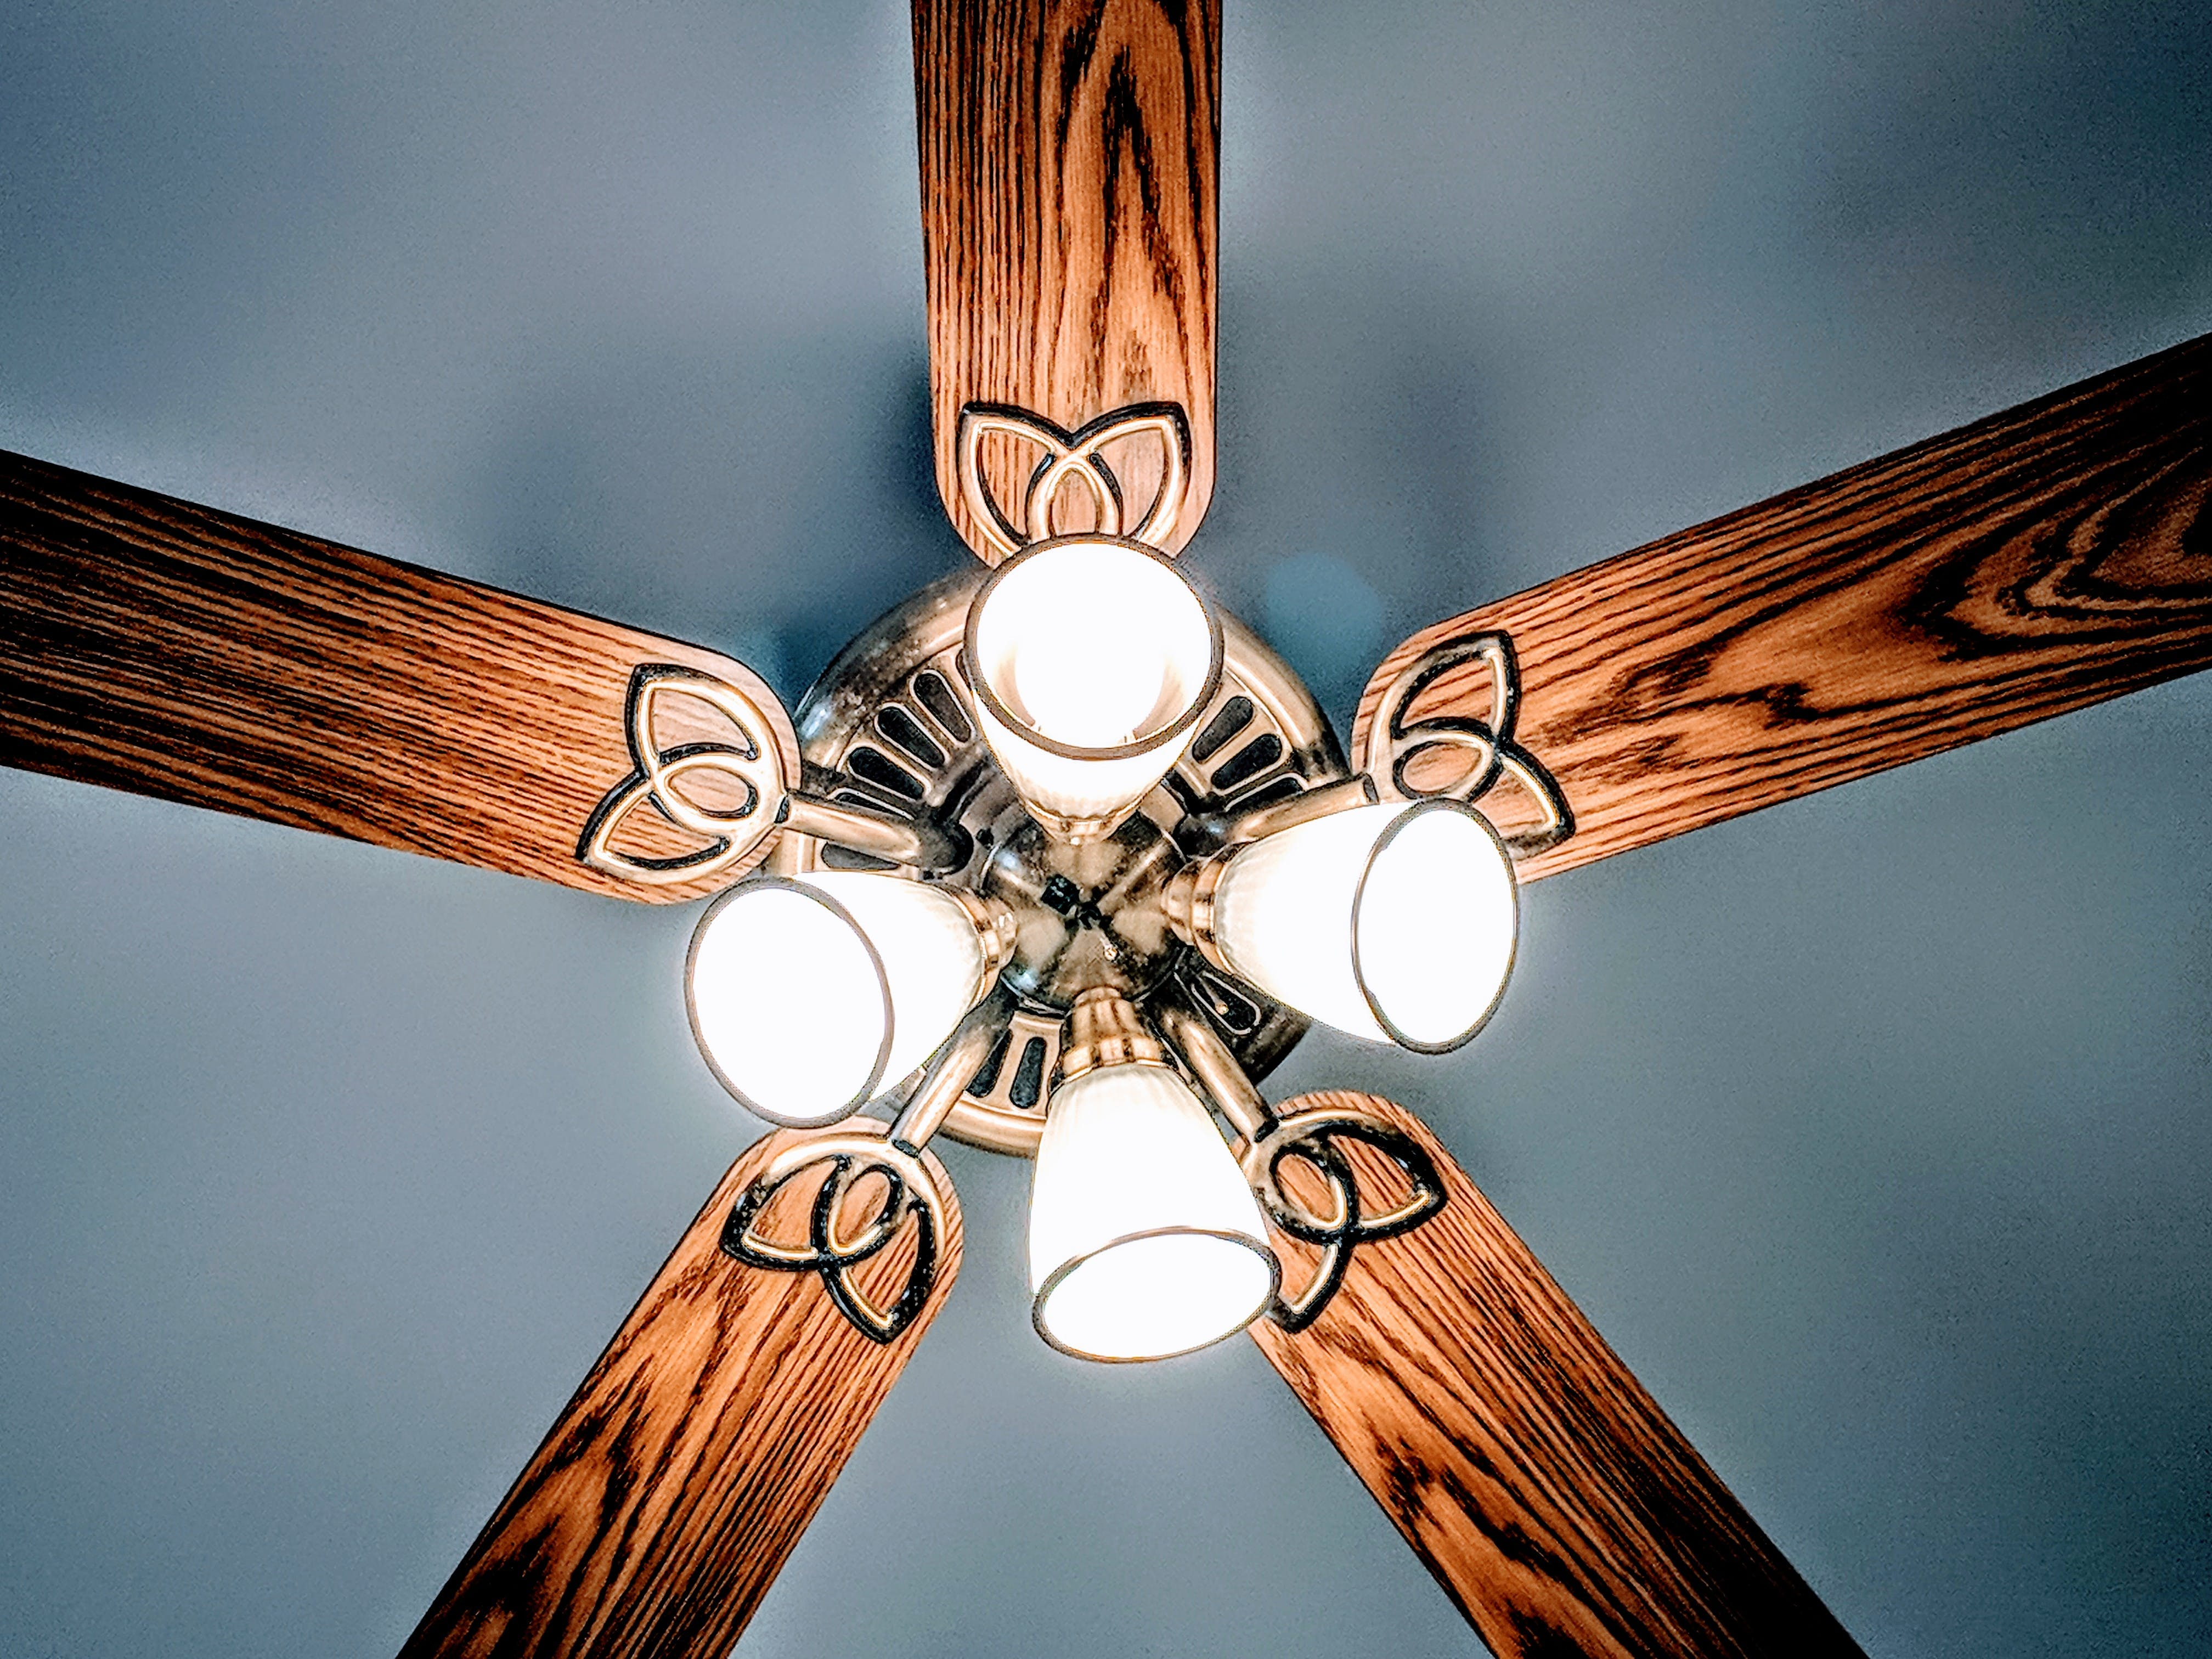 Lit Brown and Gray Lighted Ceiling Fan